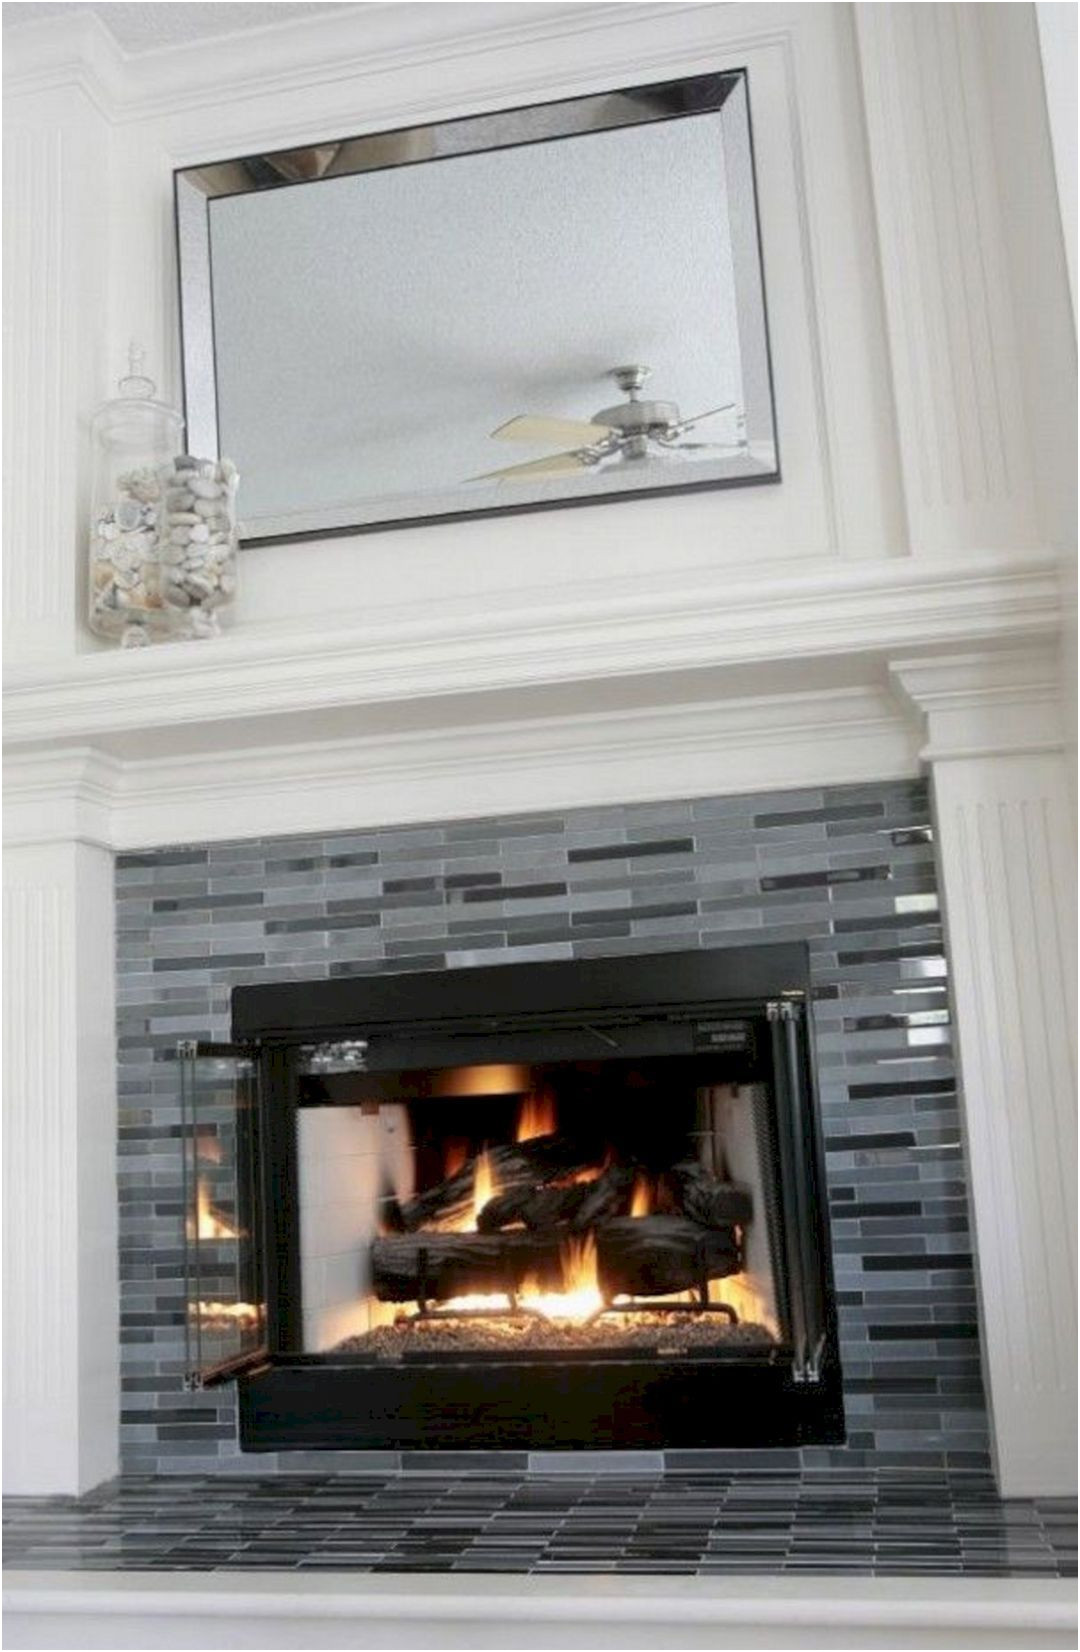 Awesome Tile for Fireplace Ideas